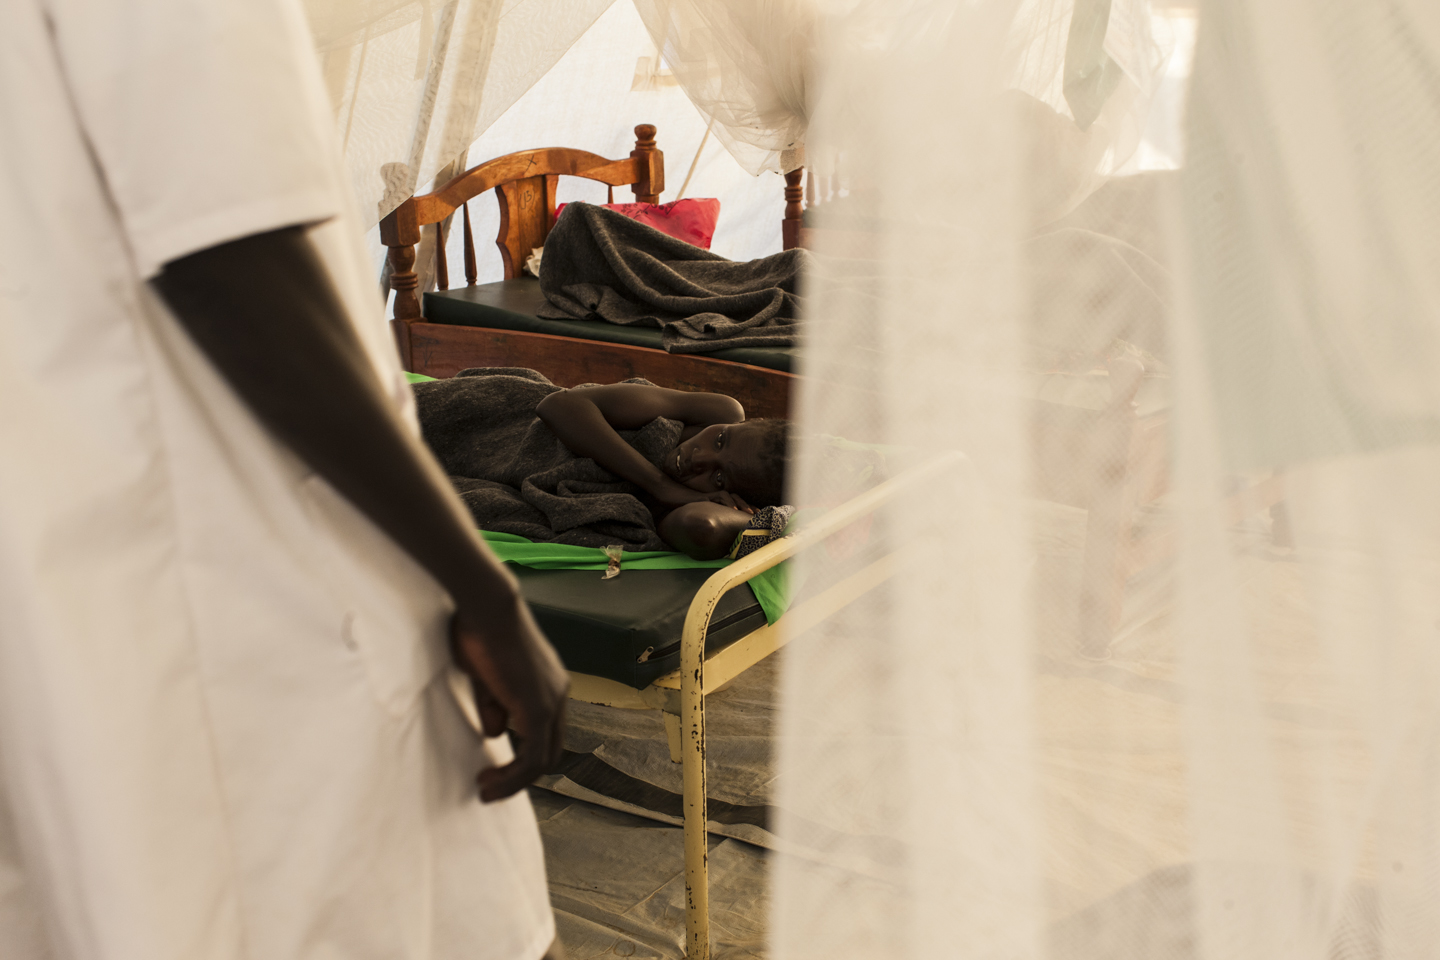 A nurse makes his rounds as women recover from their fistula surgeries at the Gogrial Health Care Center, which is run by Médecins Sans Frontières (MSF) in Gogrial, South Sudan, November 28, 2012.